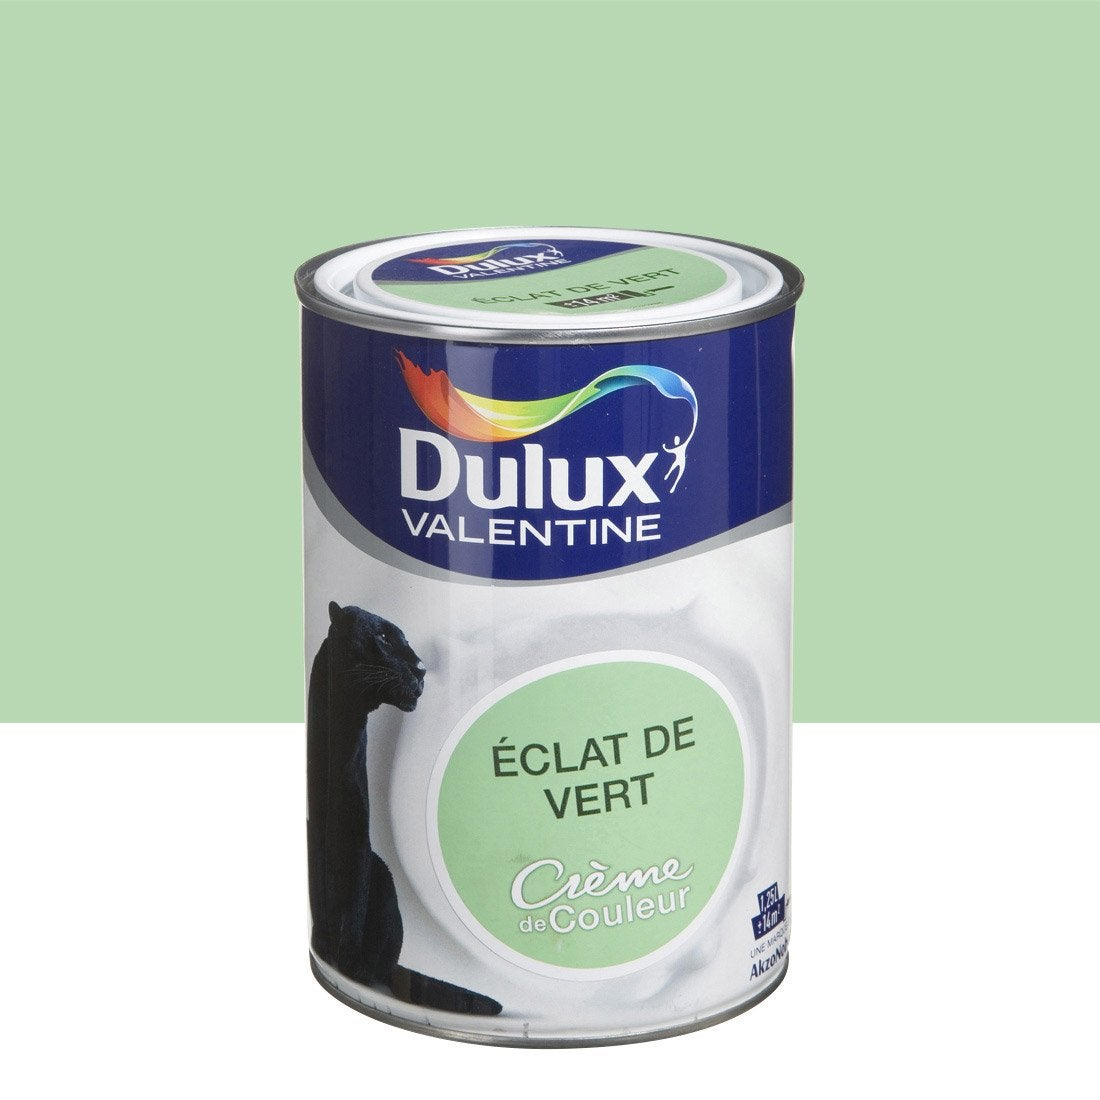 peinture eclat de vert dulux valentine cr me de couleur l leroy merlin. Black Bedroom Furniture Sets. Home Design Ideas